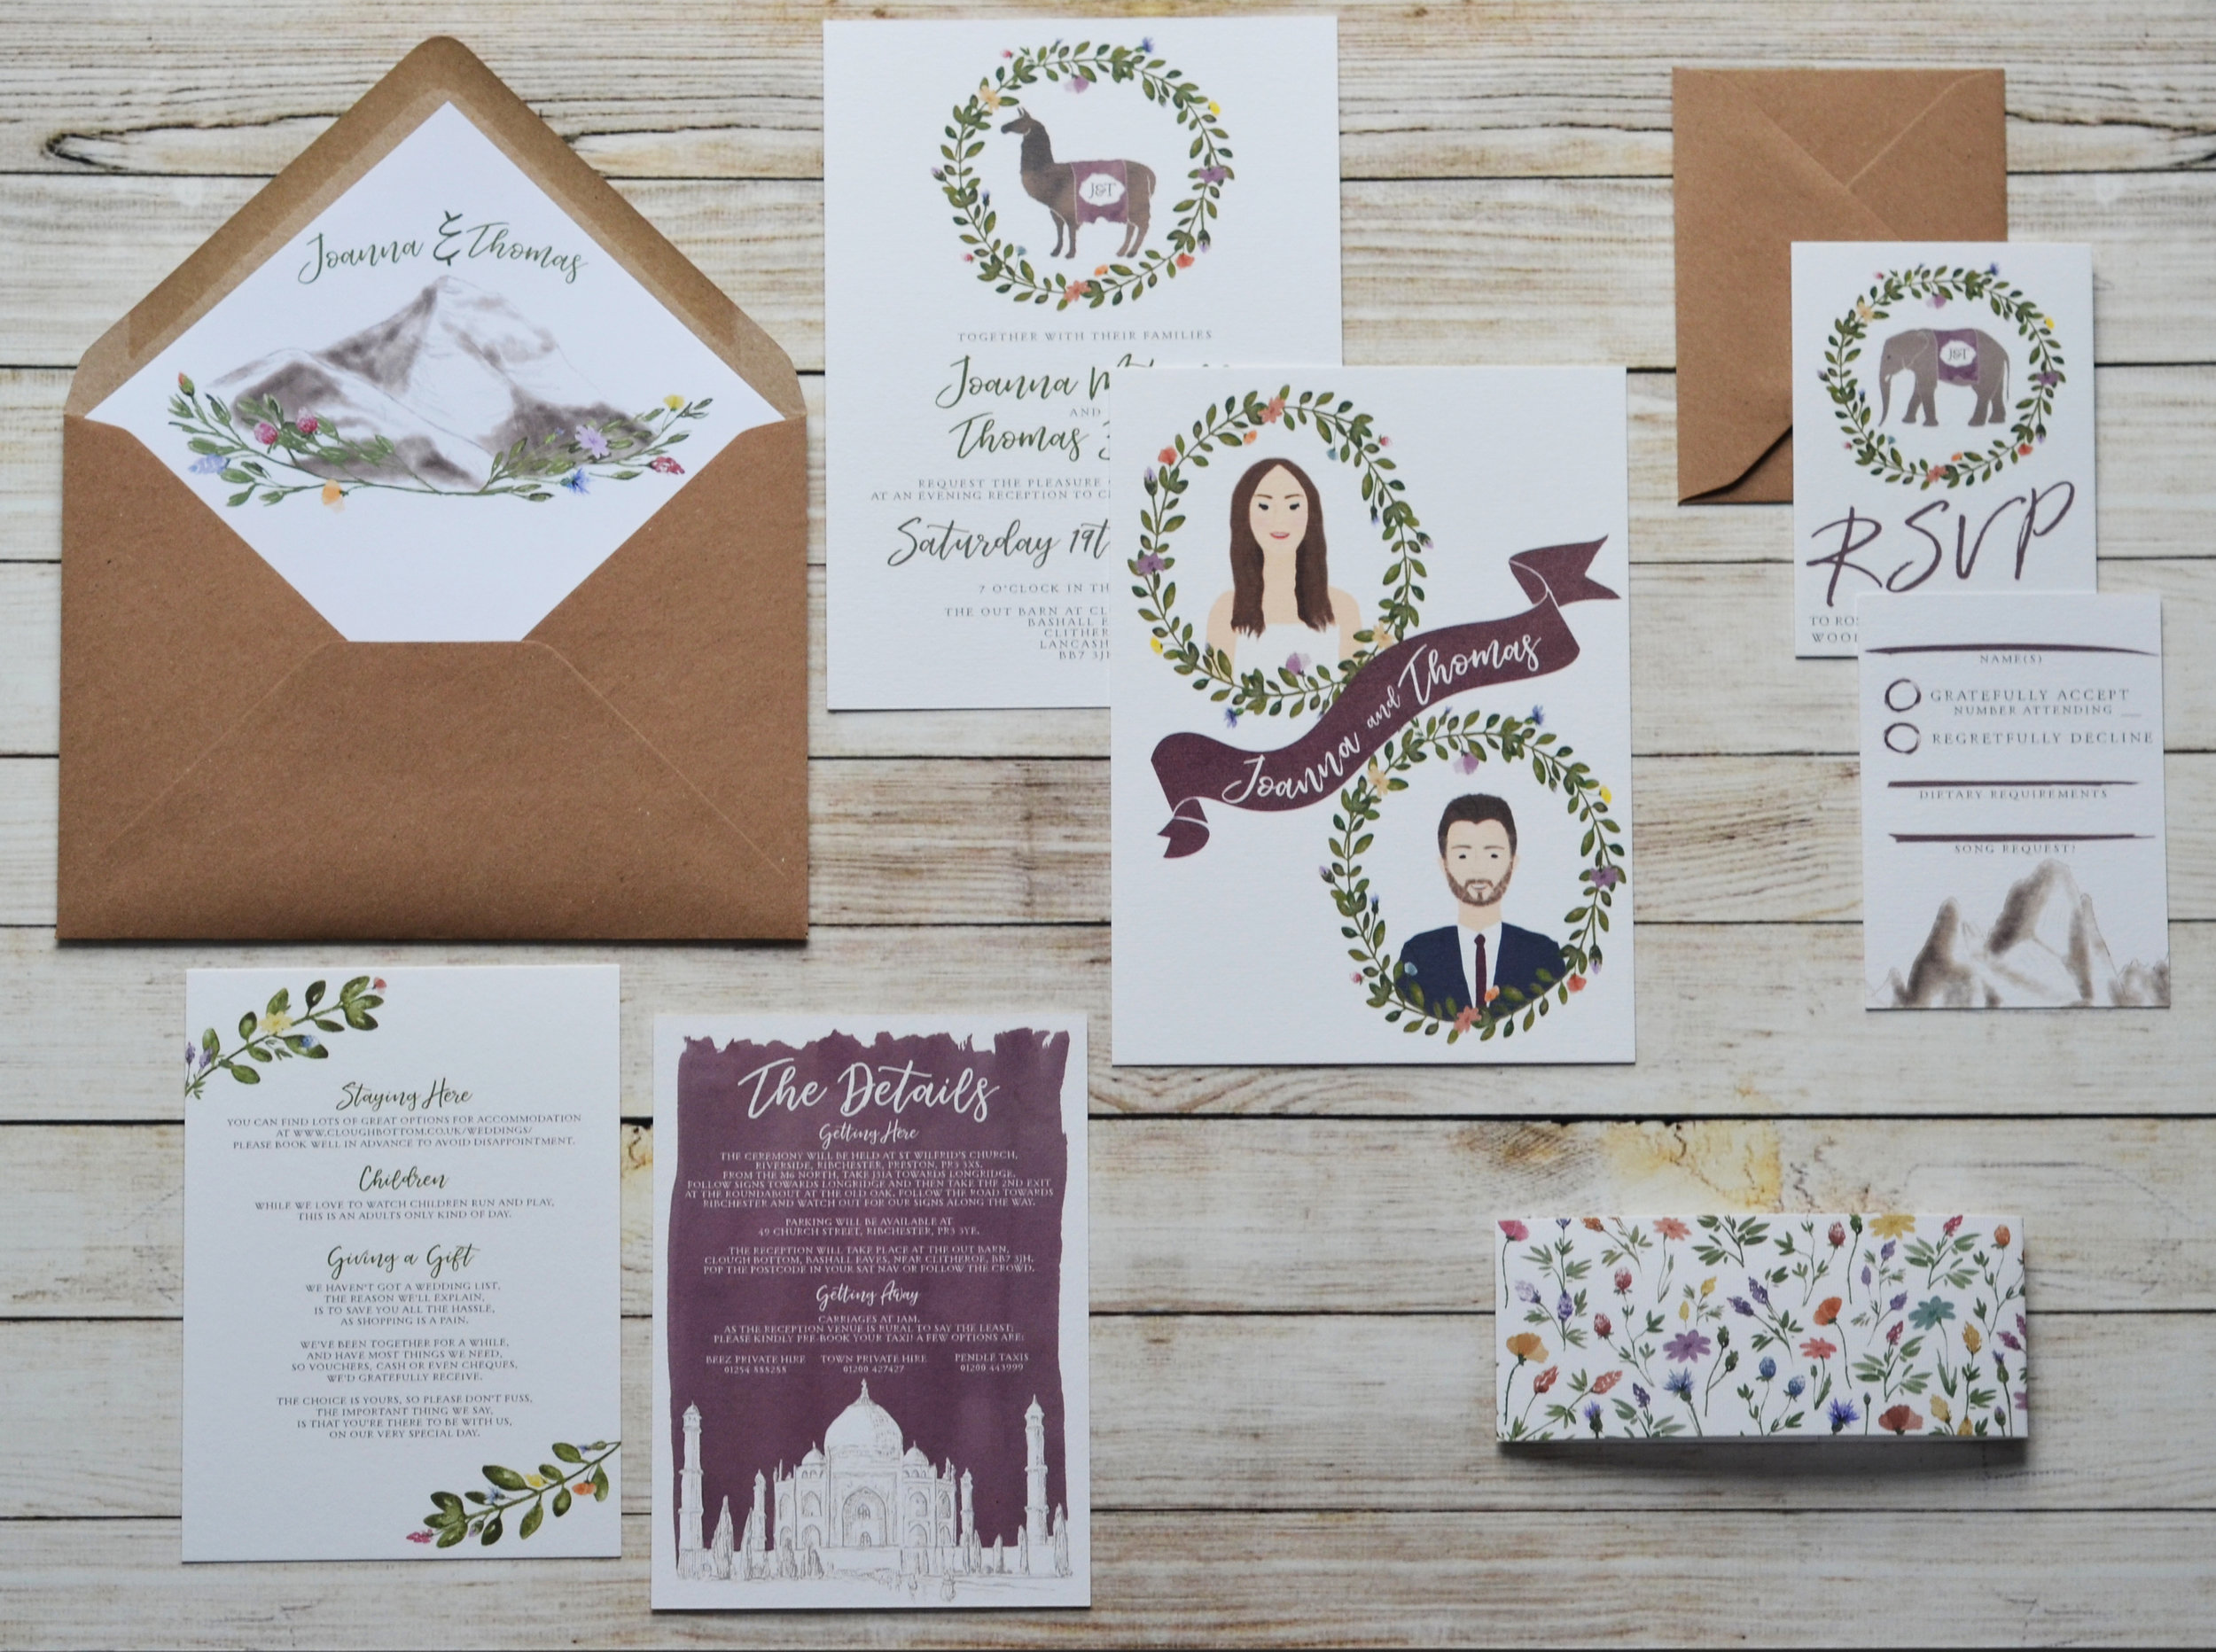 bespoke wedding stationery design travel wedding